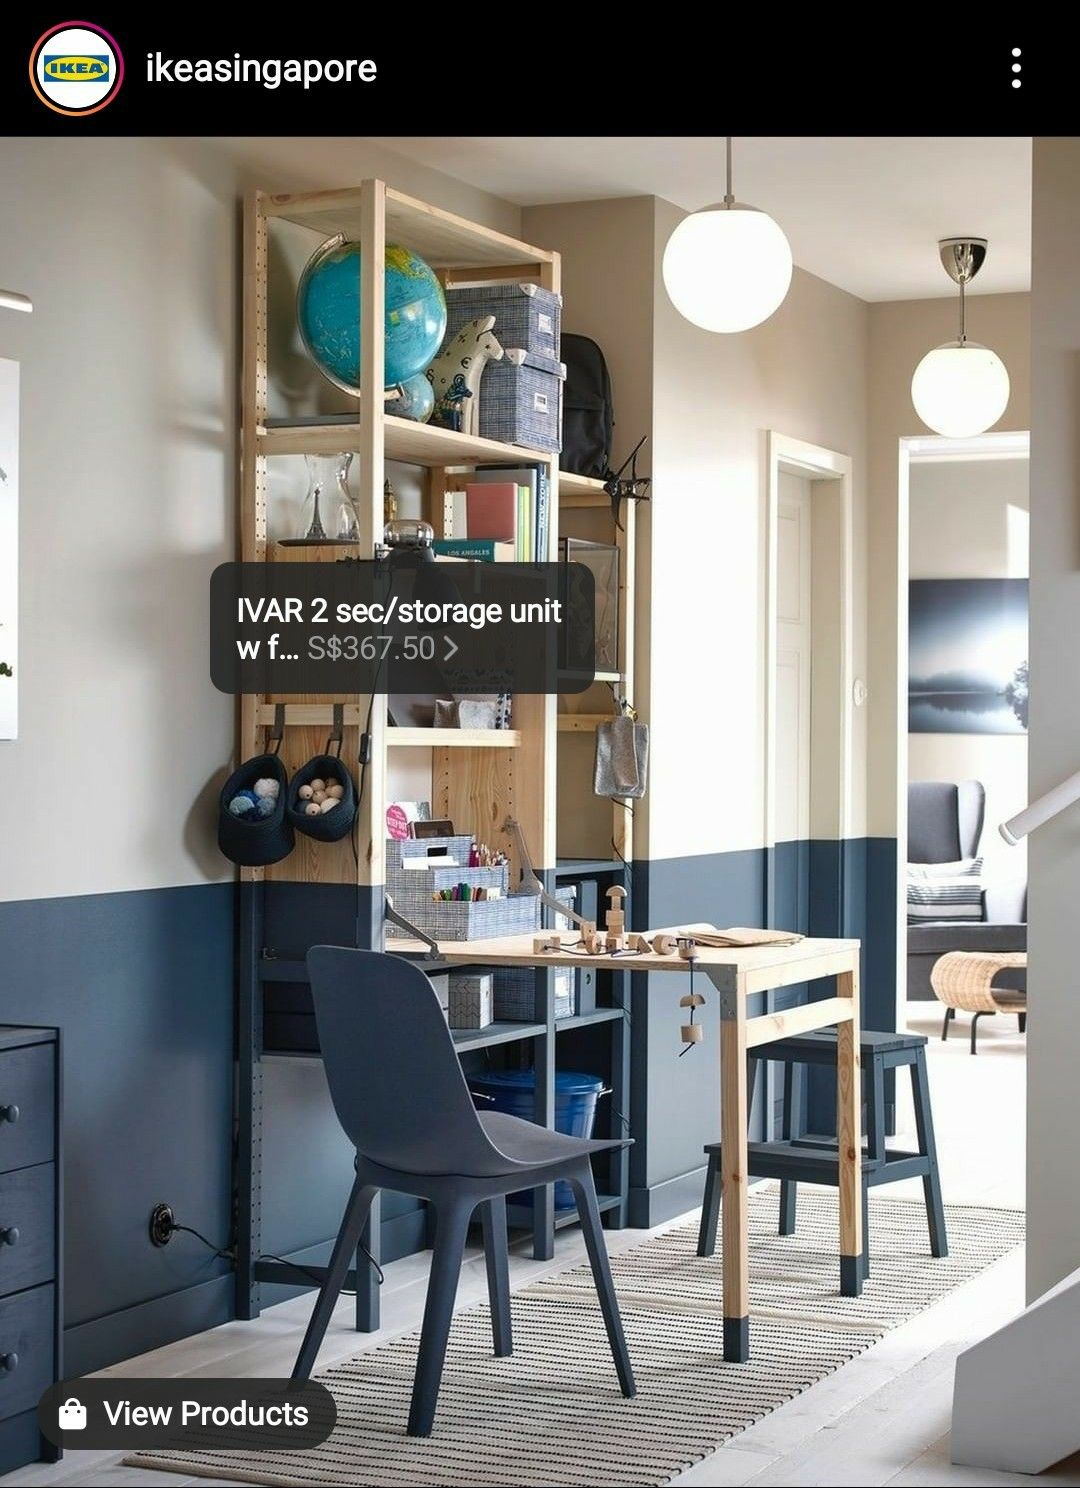 Pin by M N on Home Ideas in 2020 Home decor, Home, Ikea